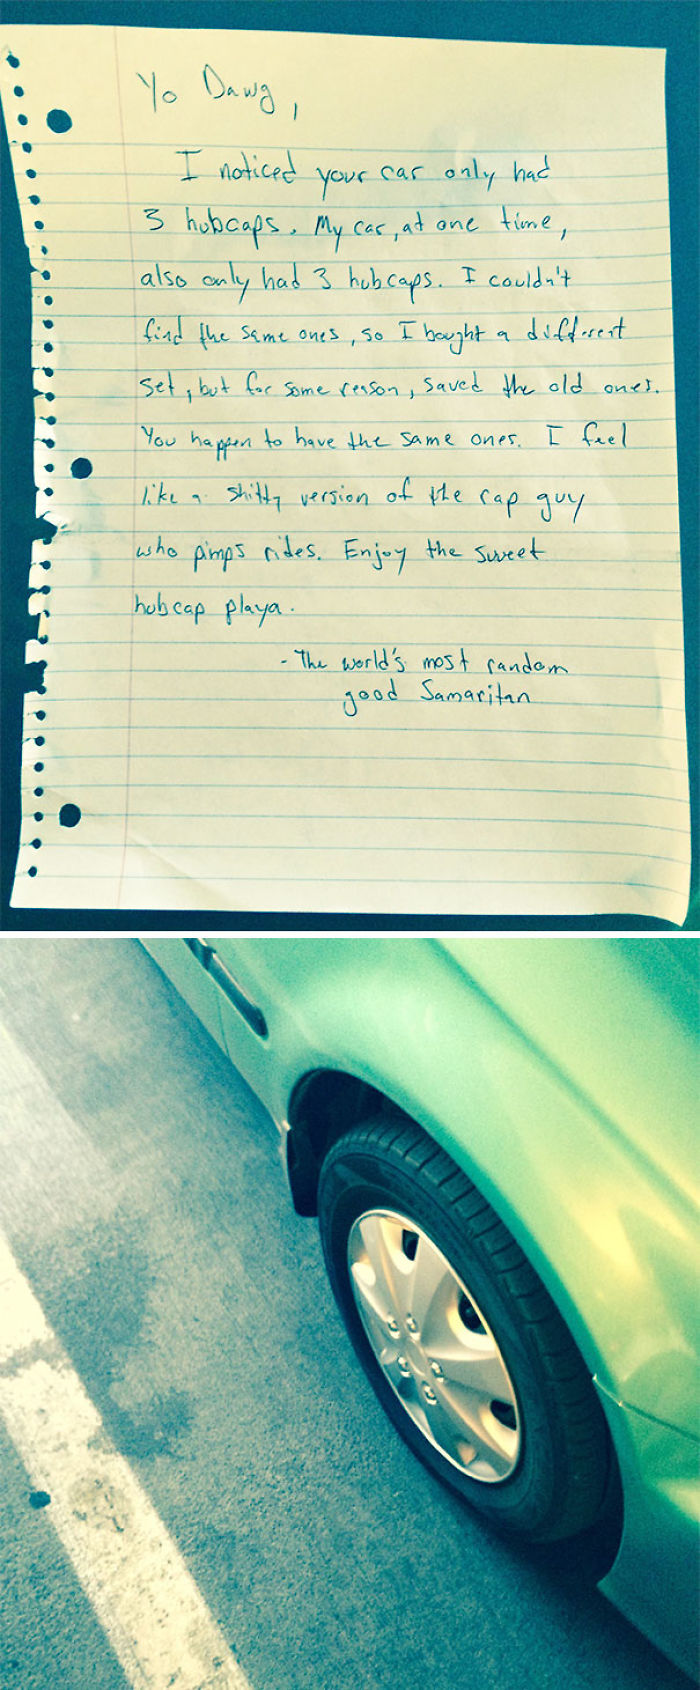 Found This Note On My Car After Work Yesterday. Lost My Hubcap When I Moved Across The Country. Thanks Kind Stranger!